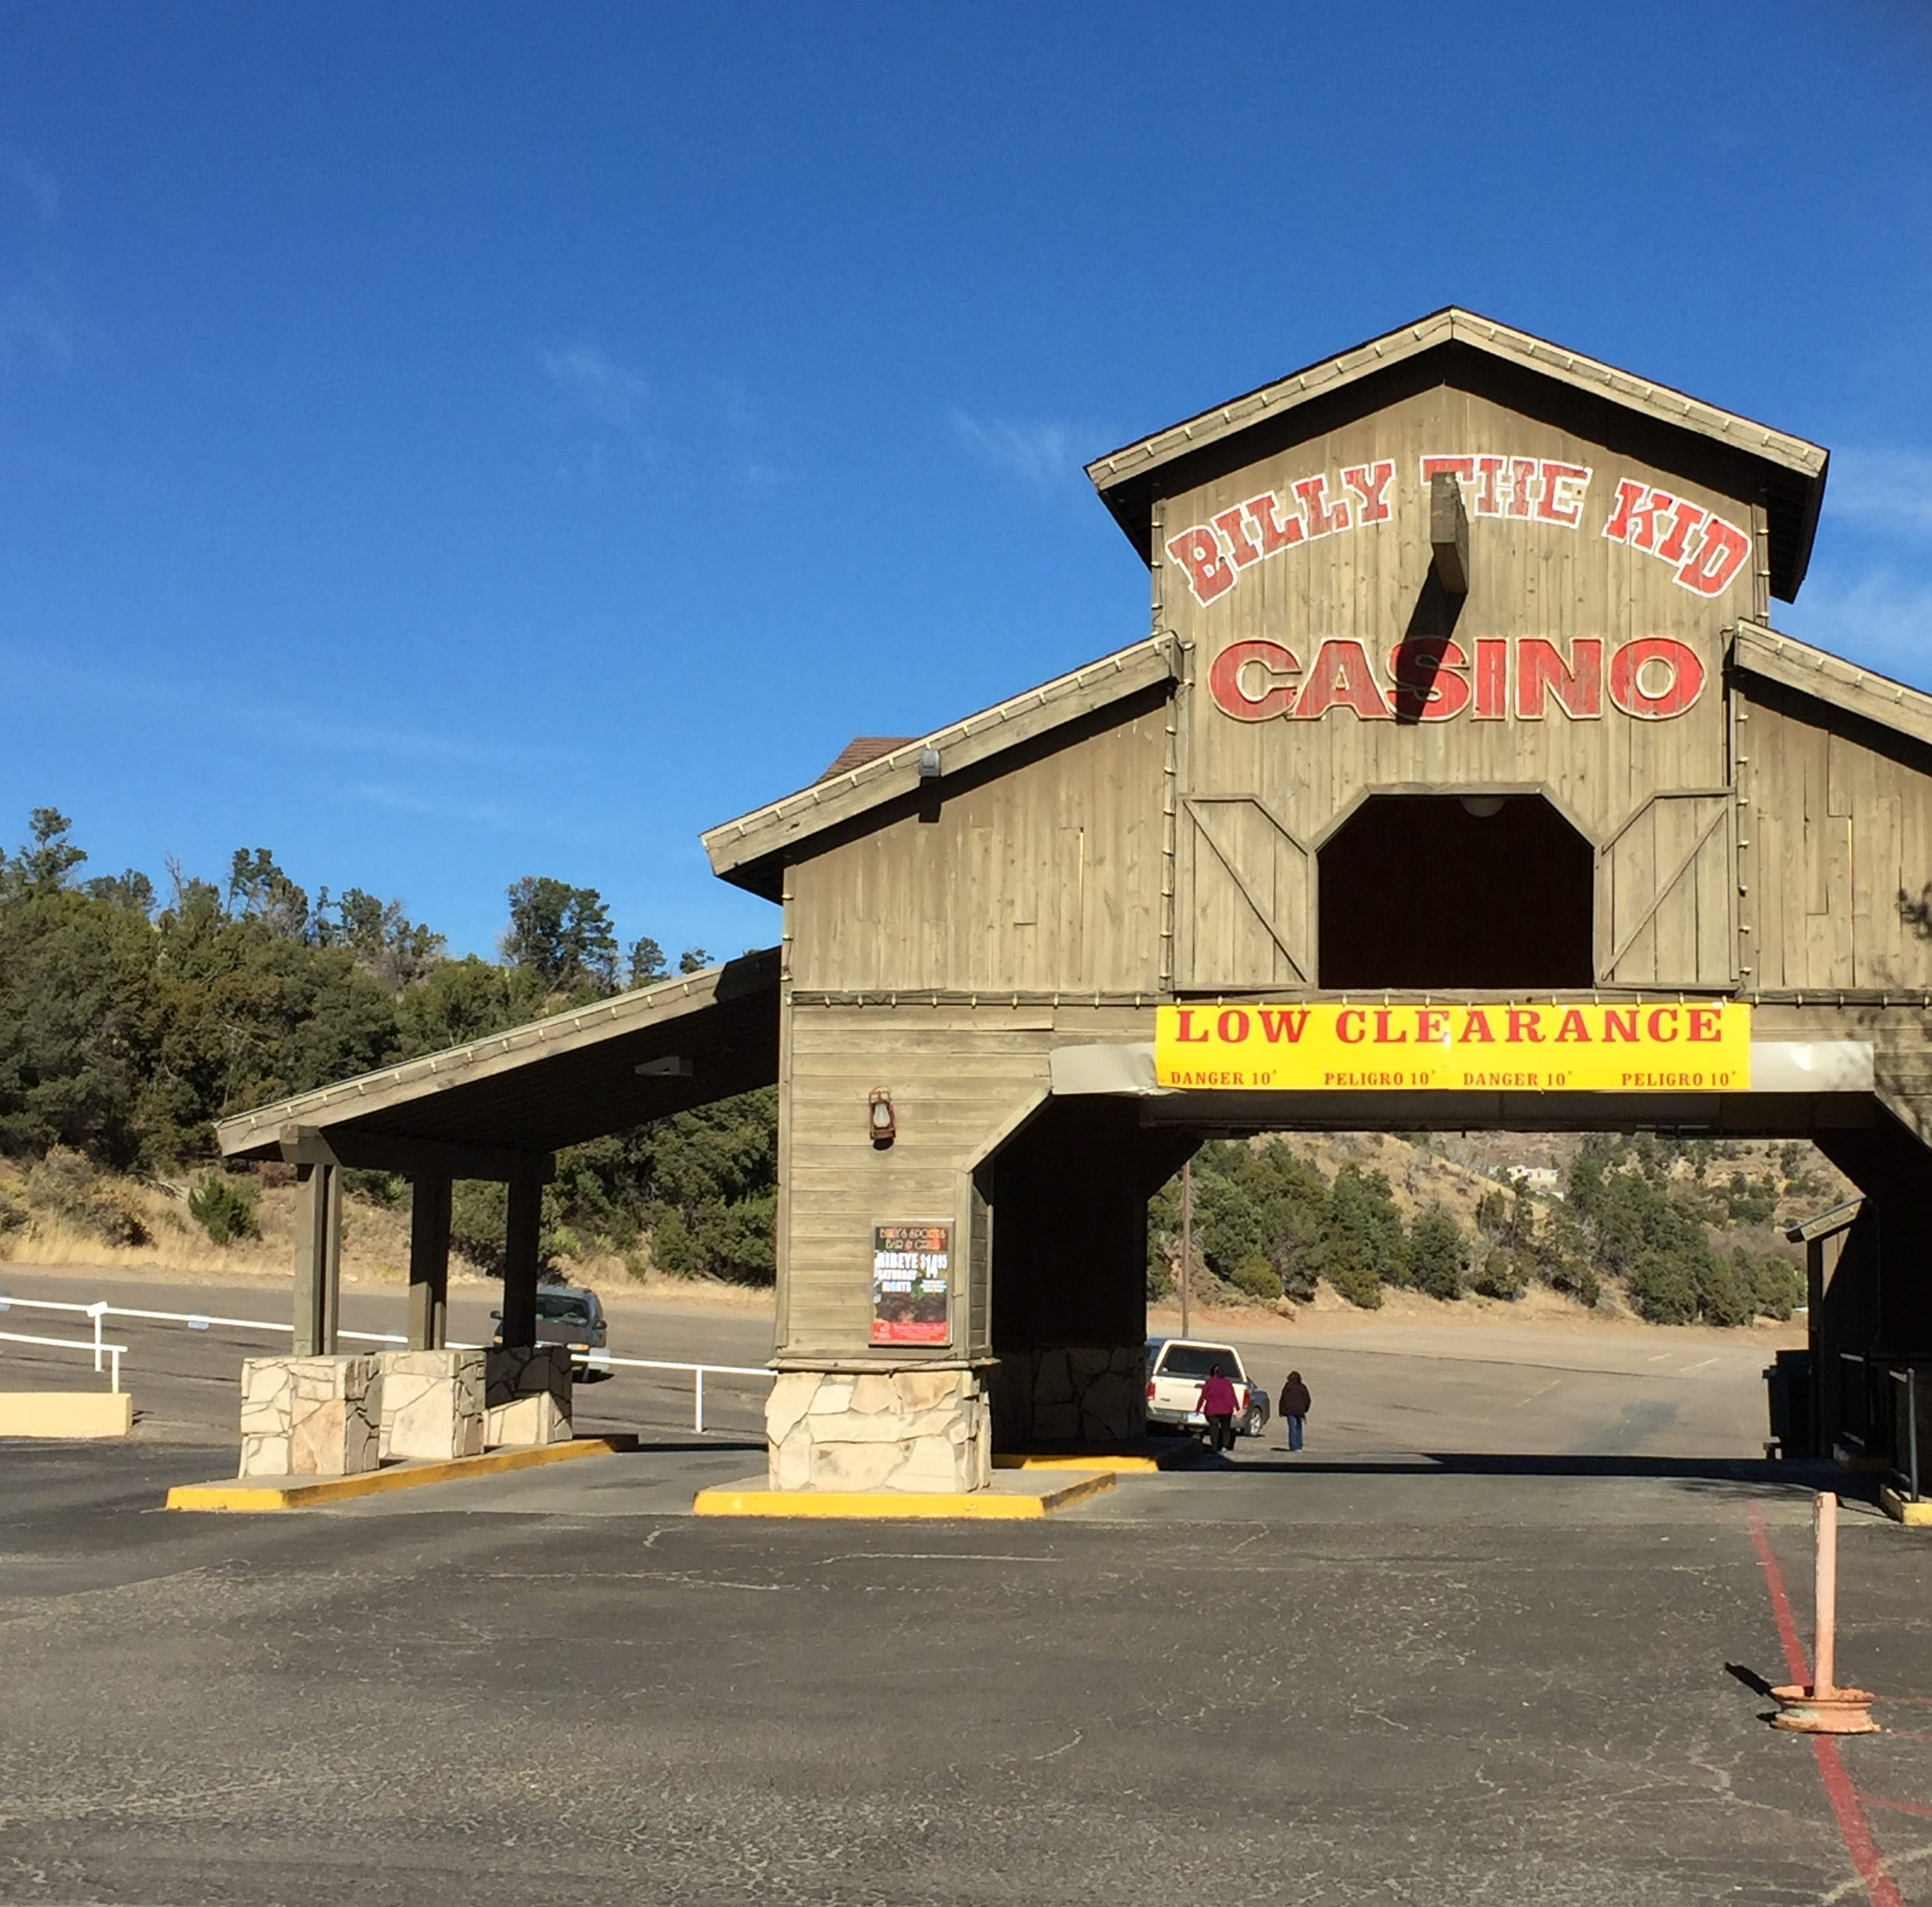 Suspicious packages prompt evacuation of Billy the Kid Casino Friday